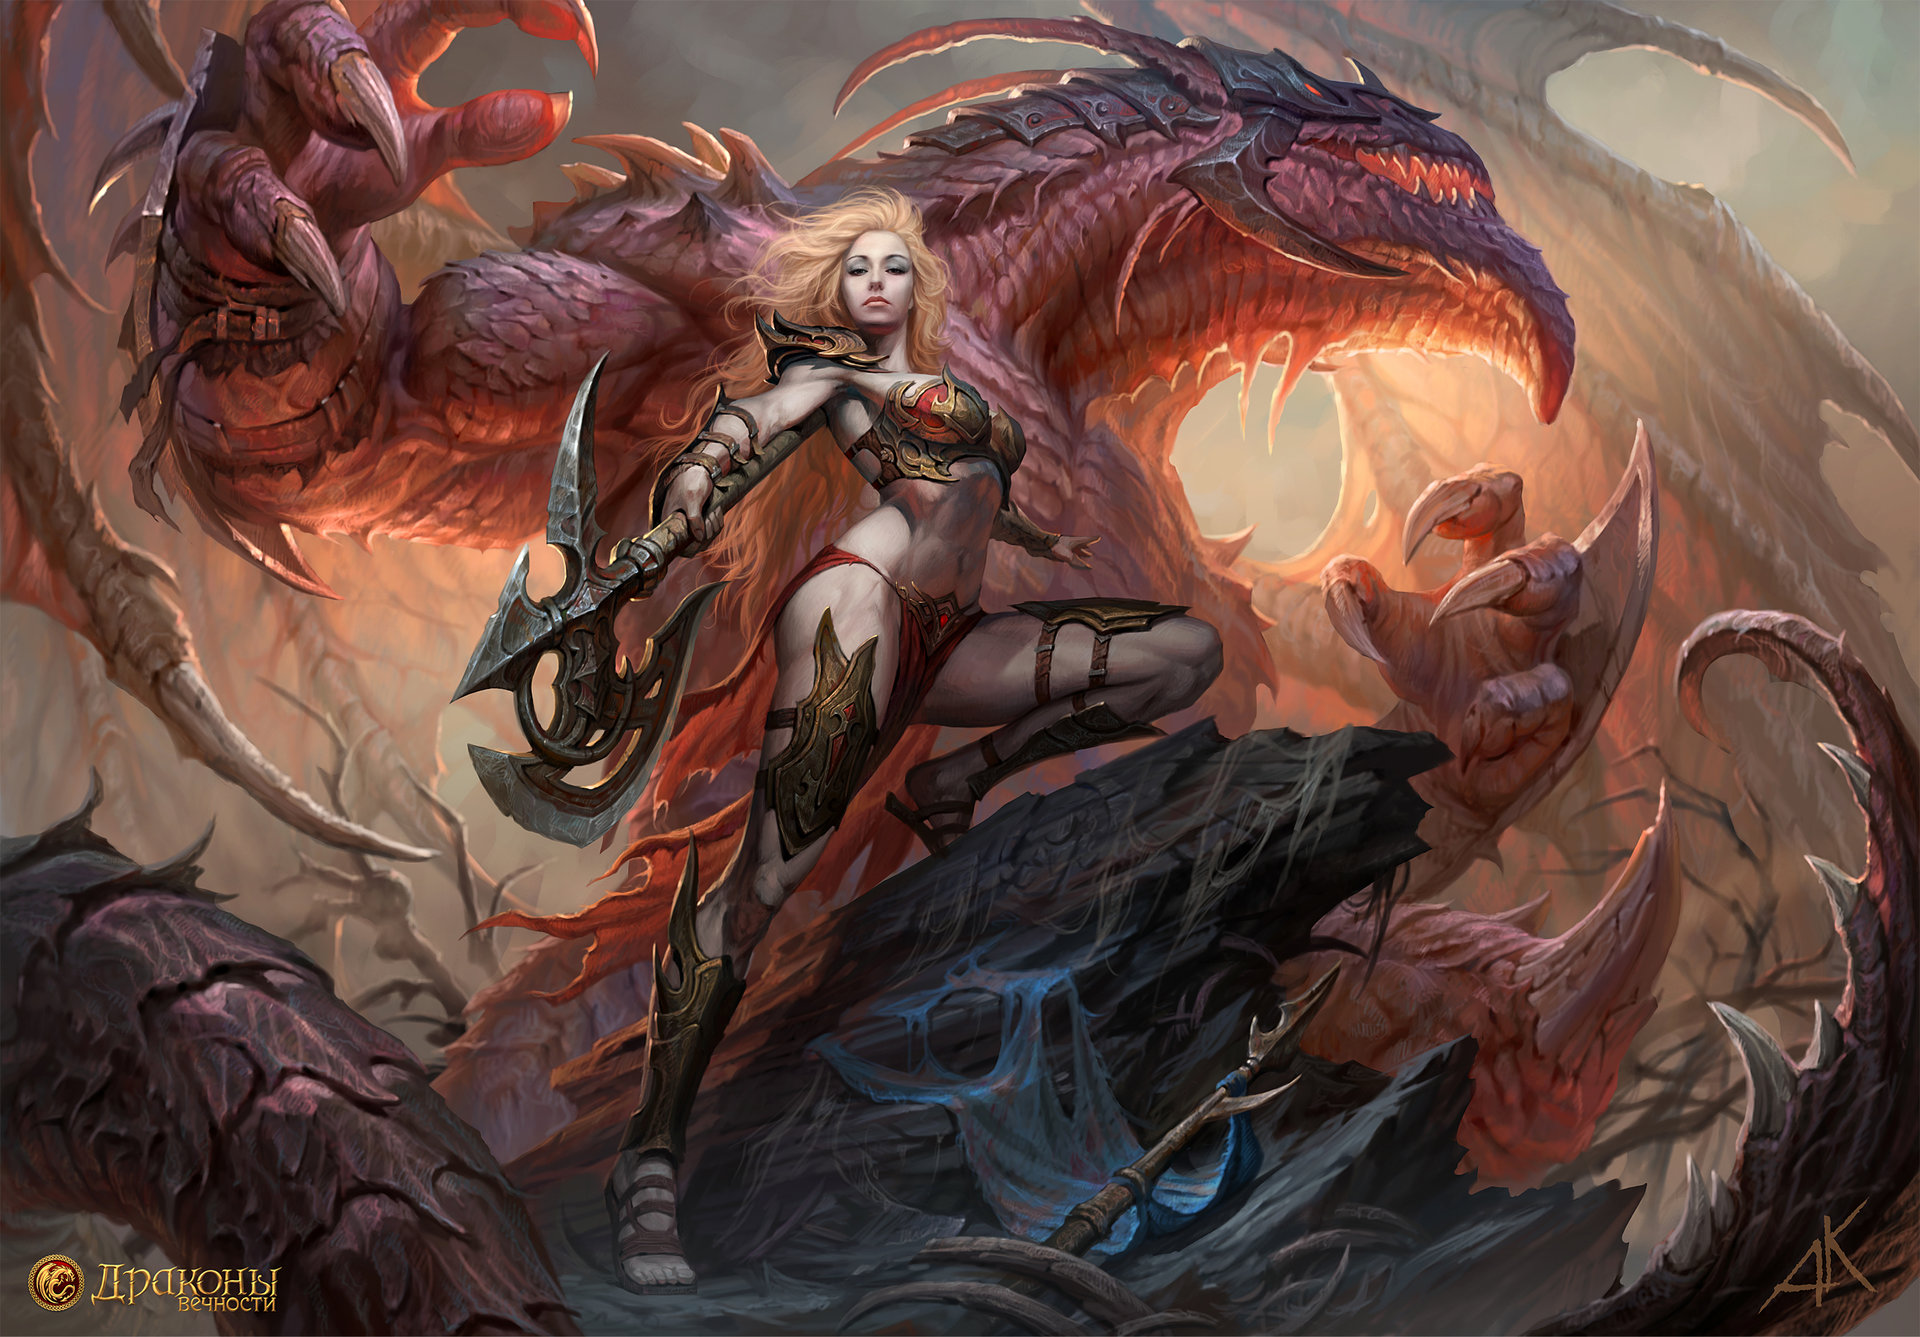 The Amazing Fantasy Artworks of Andrew Kuzinskiy